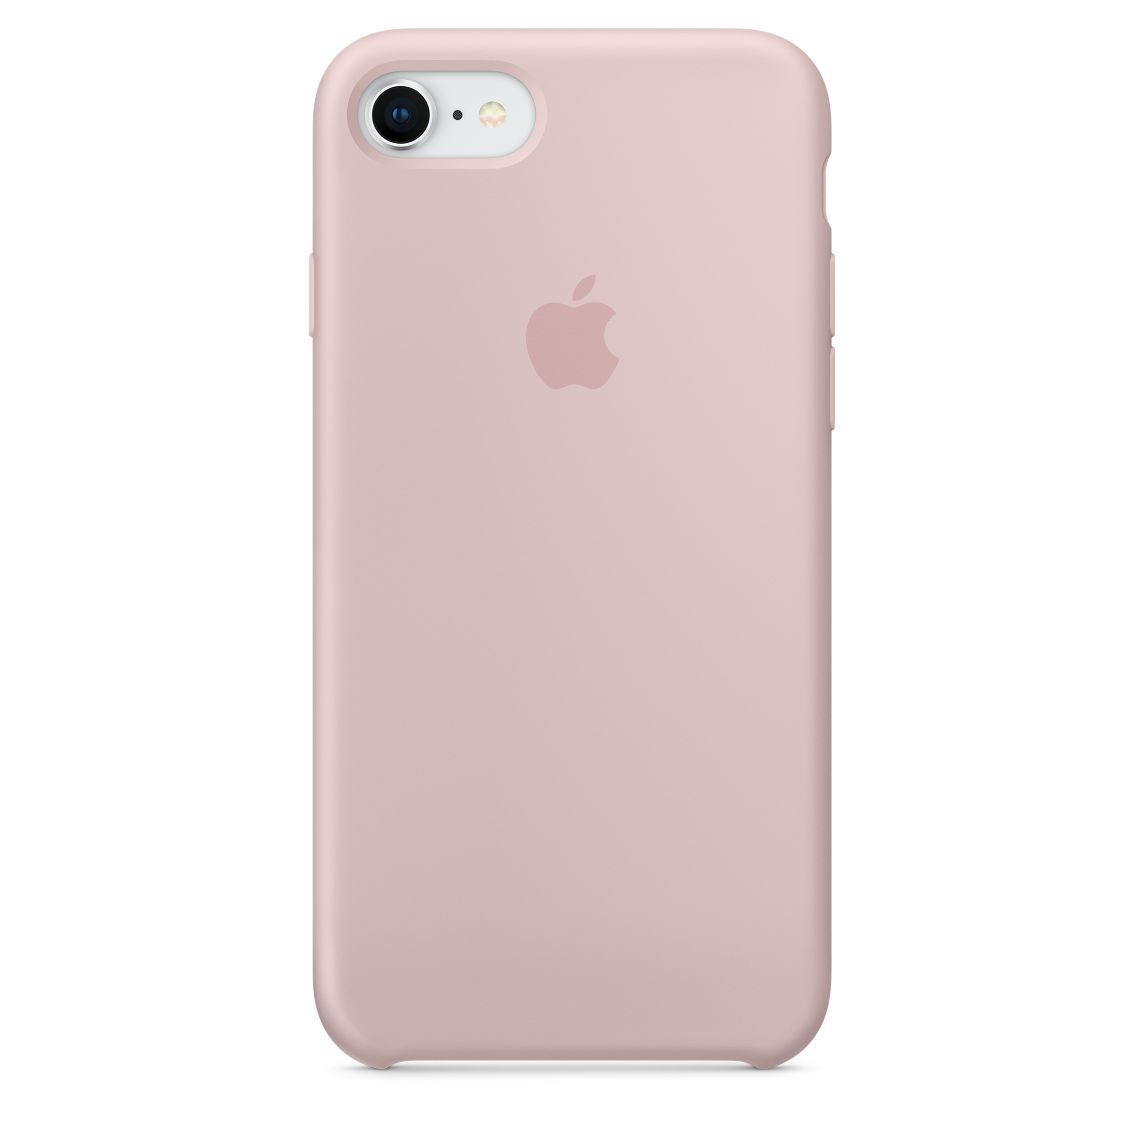 Iphone 8 7 Silicone Case Black Iphone Handyhulle Iphone Handyhullen Iphone 6